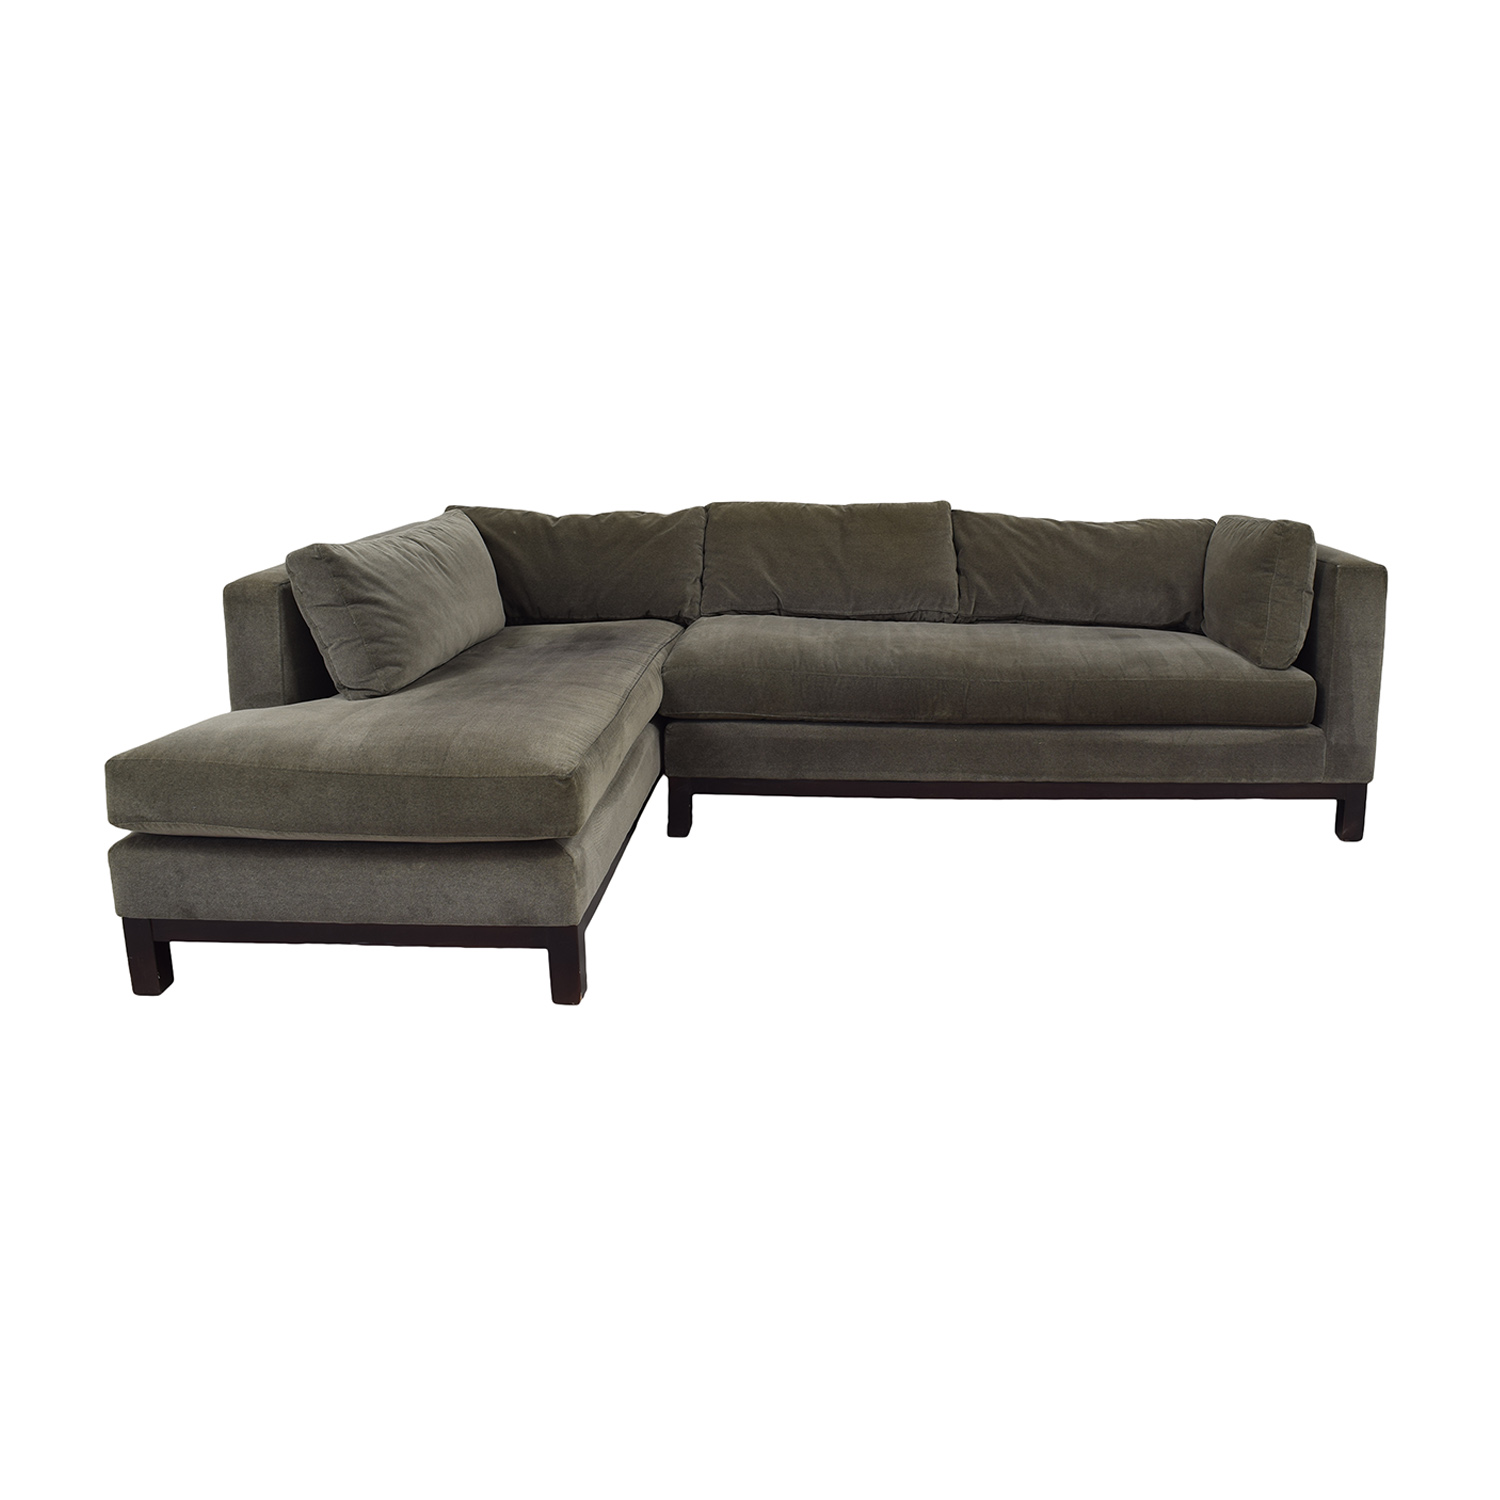 Crate & Barrel Crate & Barrel Brown L-Shaped Sectional brown